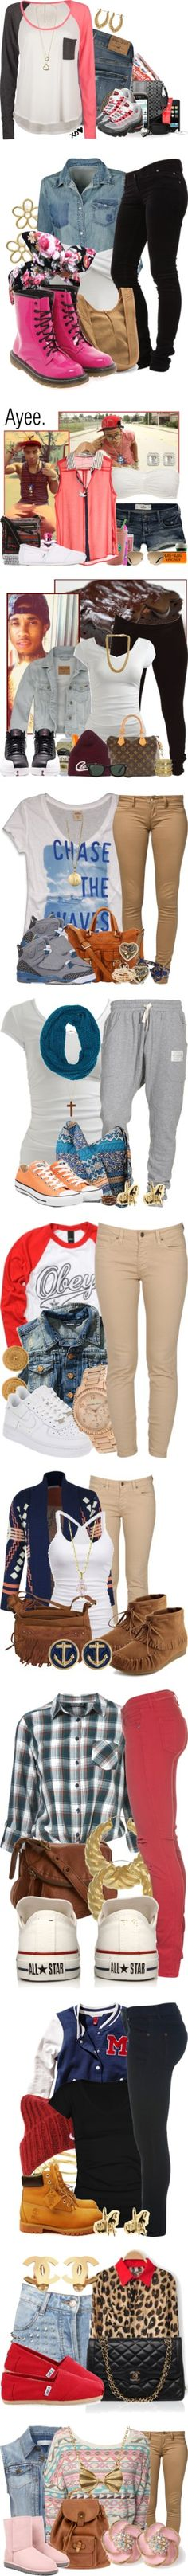 """""""~Stuff I would wear to school (Part 4)"""" by mizzstarburst ❤ liked on Polyvore"""